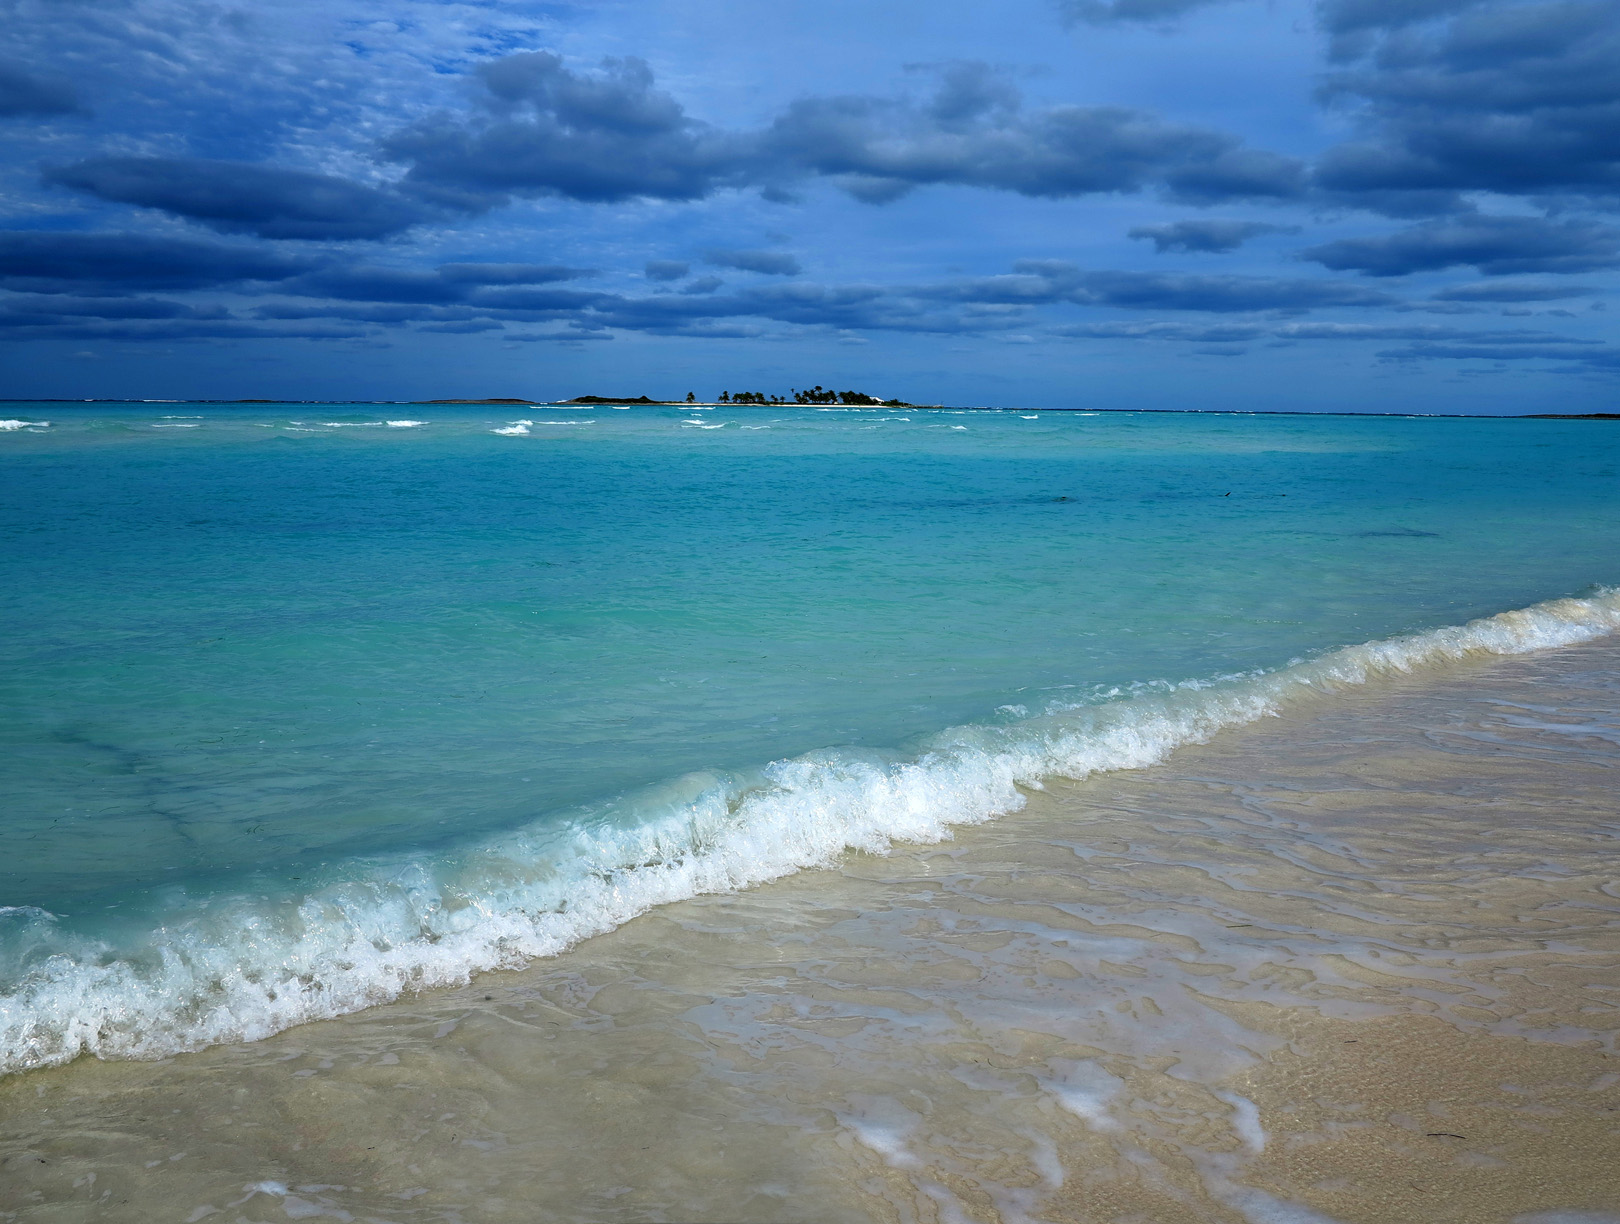 Gilliam Bay, Green Turtle Cay, Bahamas.